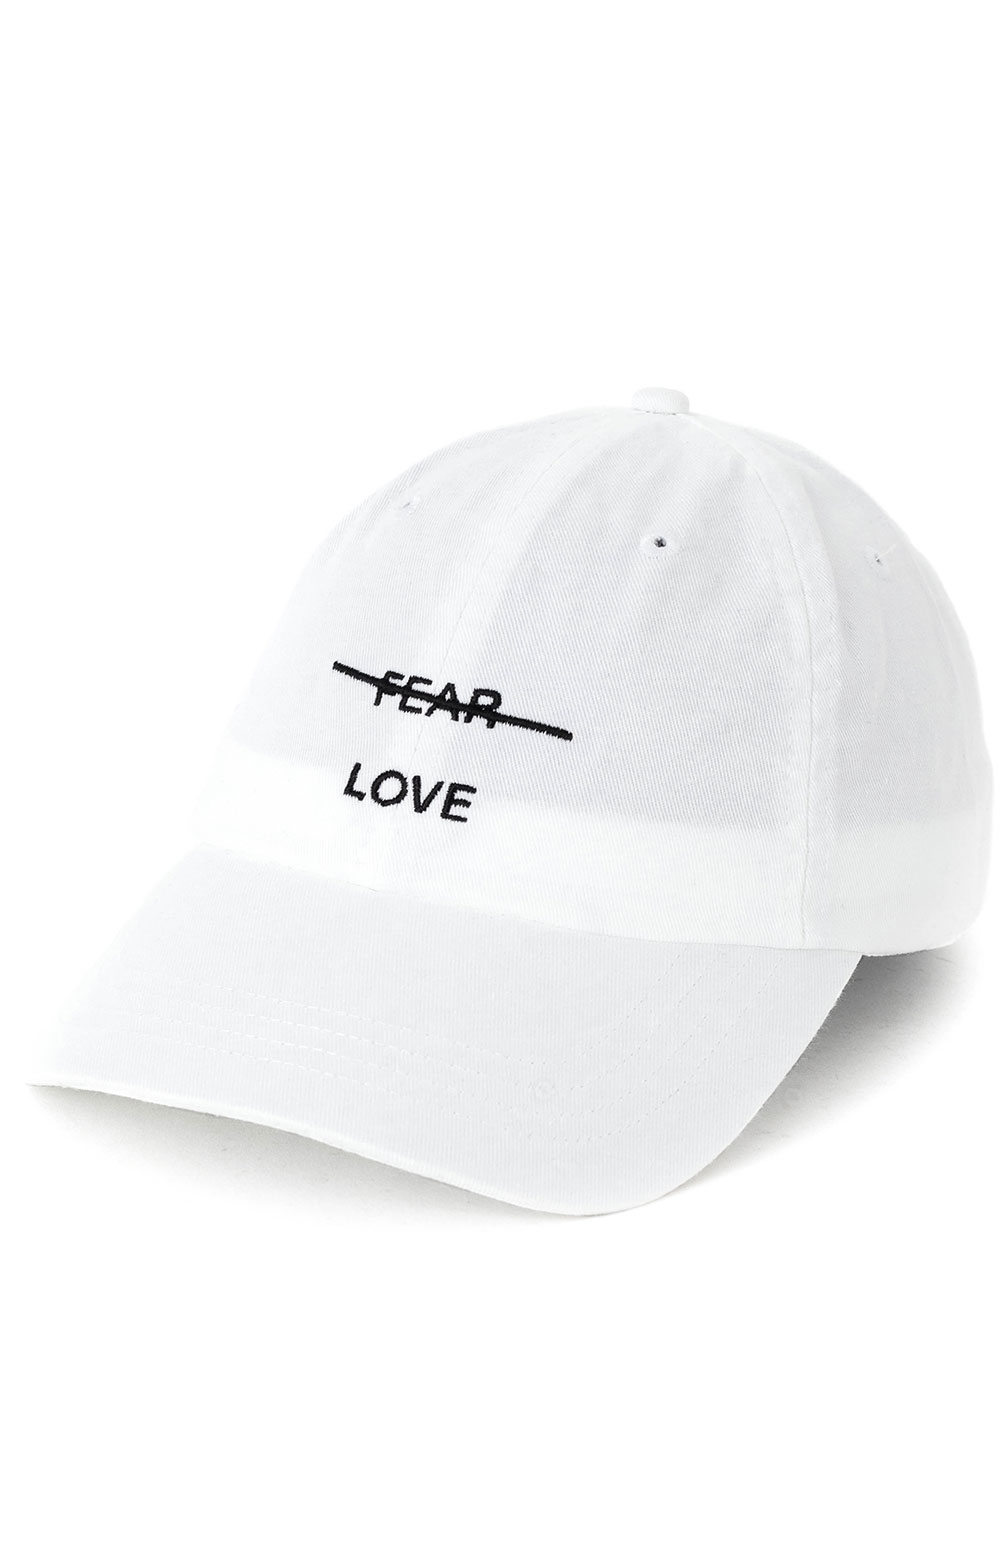 Love Over Fear Dad Hat - White